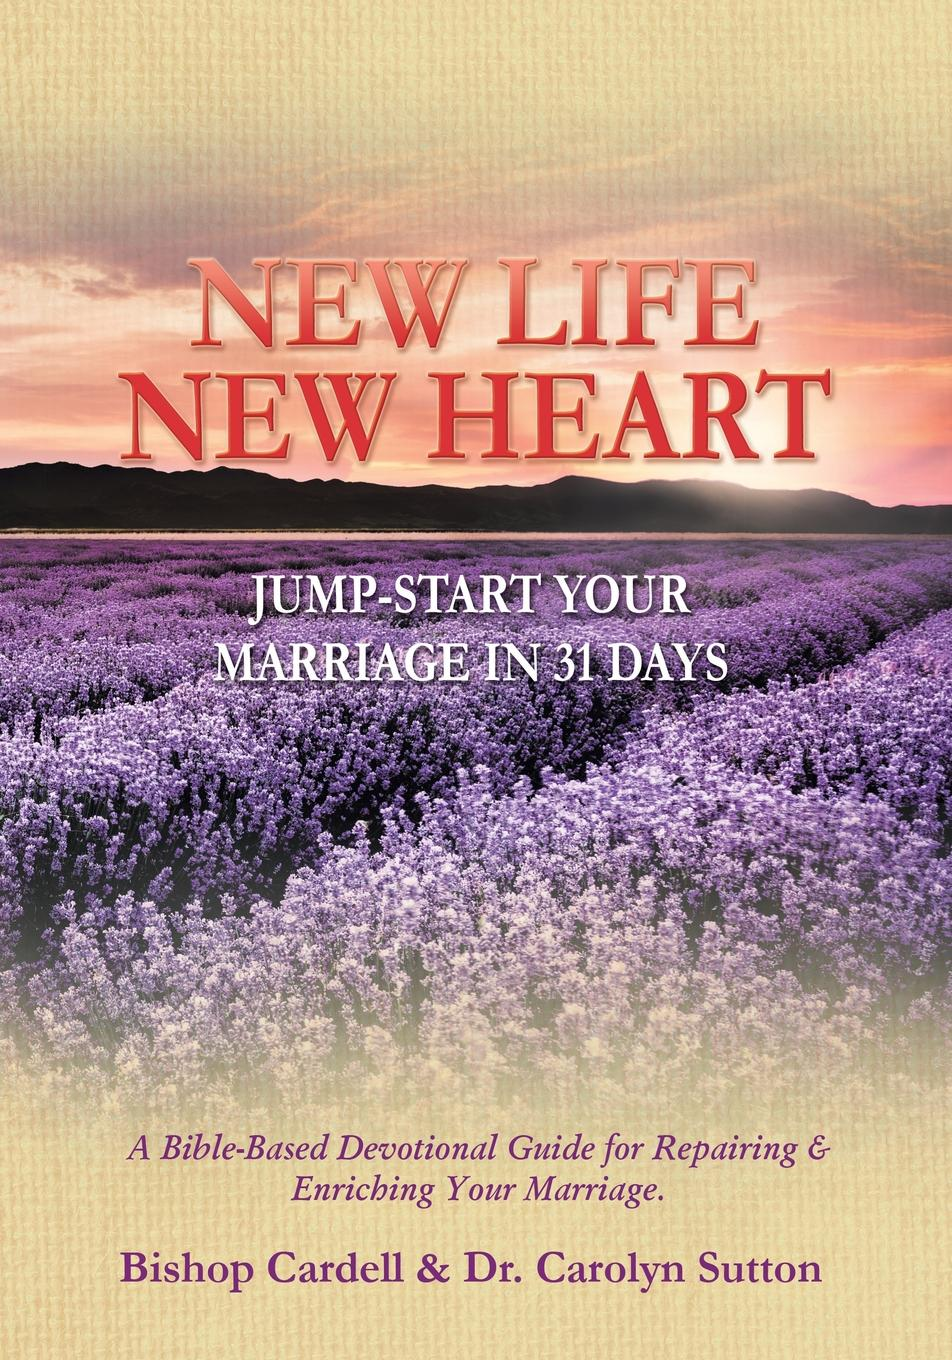 Dr. Carolyn Sutton, Bishop Cardell New Life New Heart. Jump Start Your Marriage In 31 Days marriage